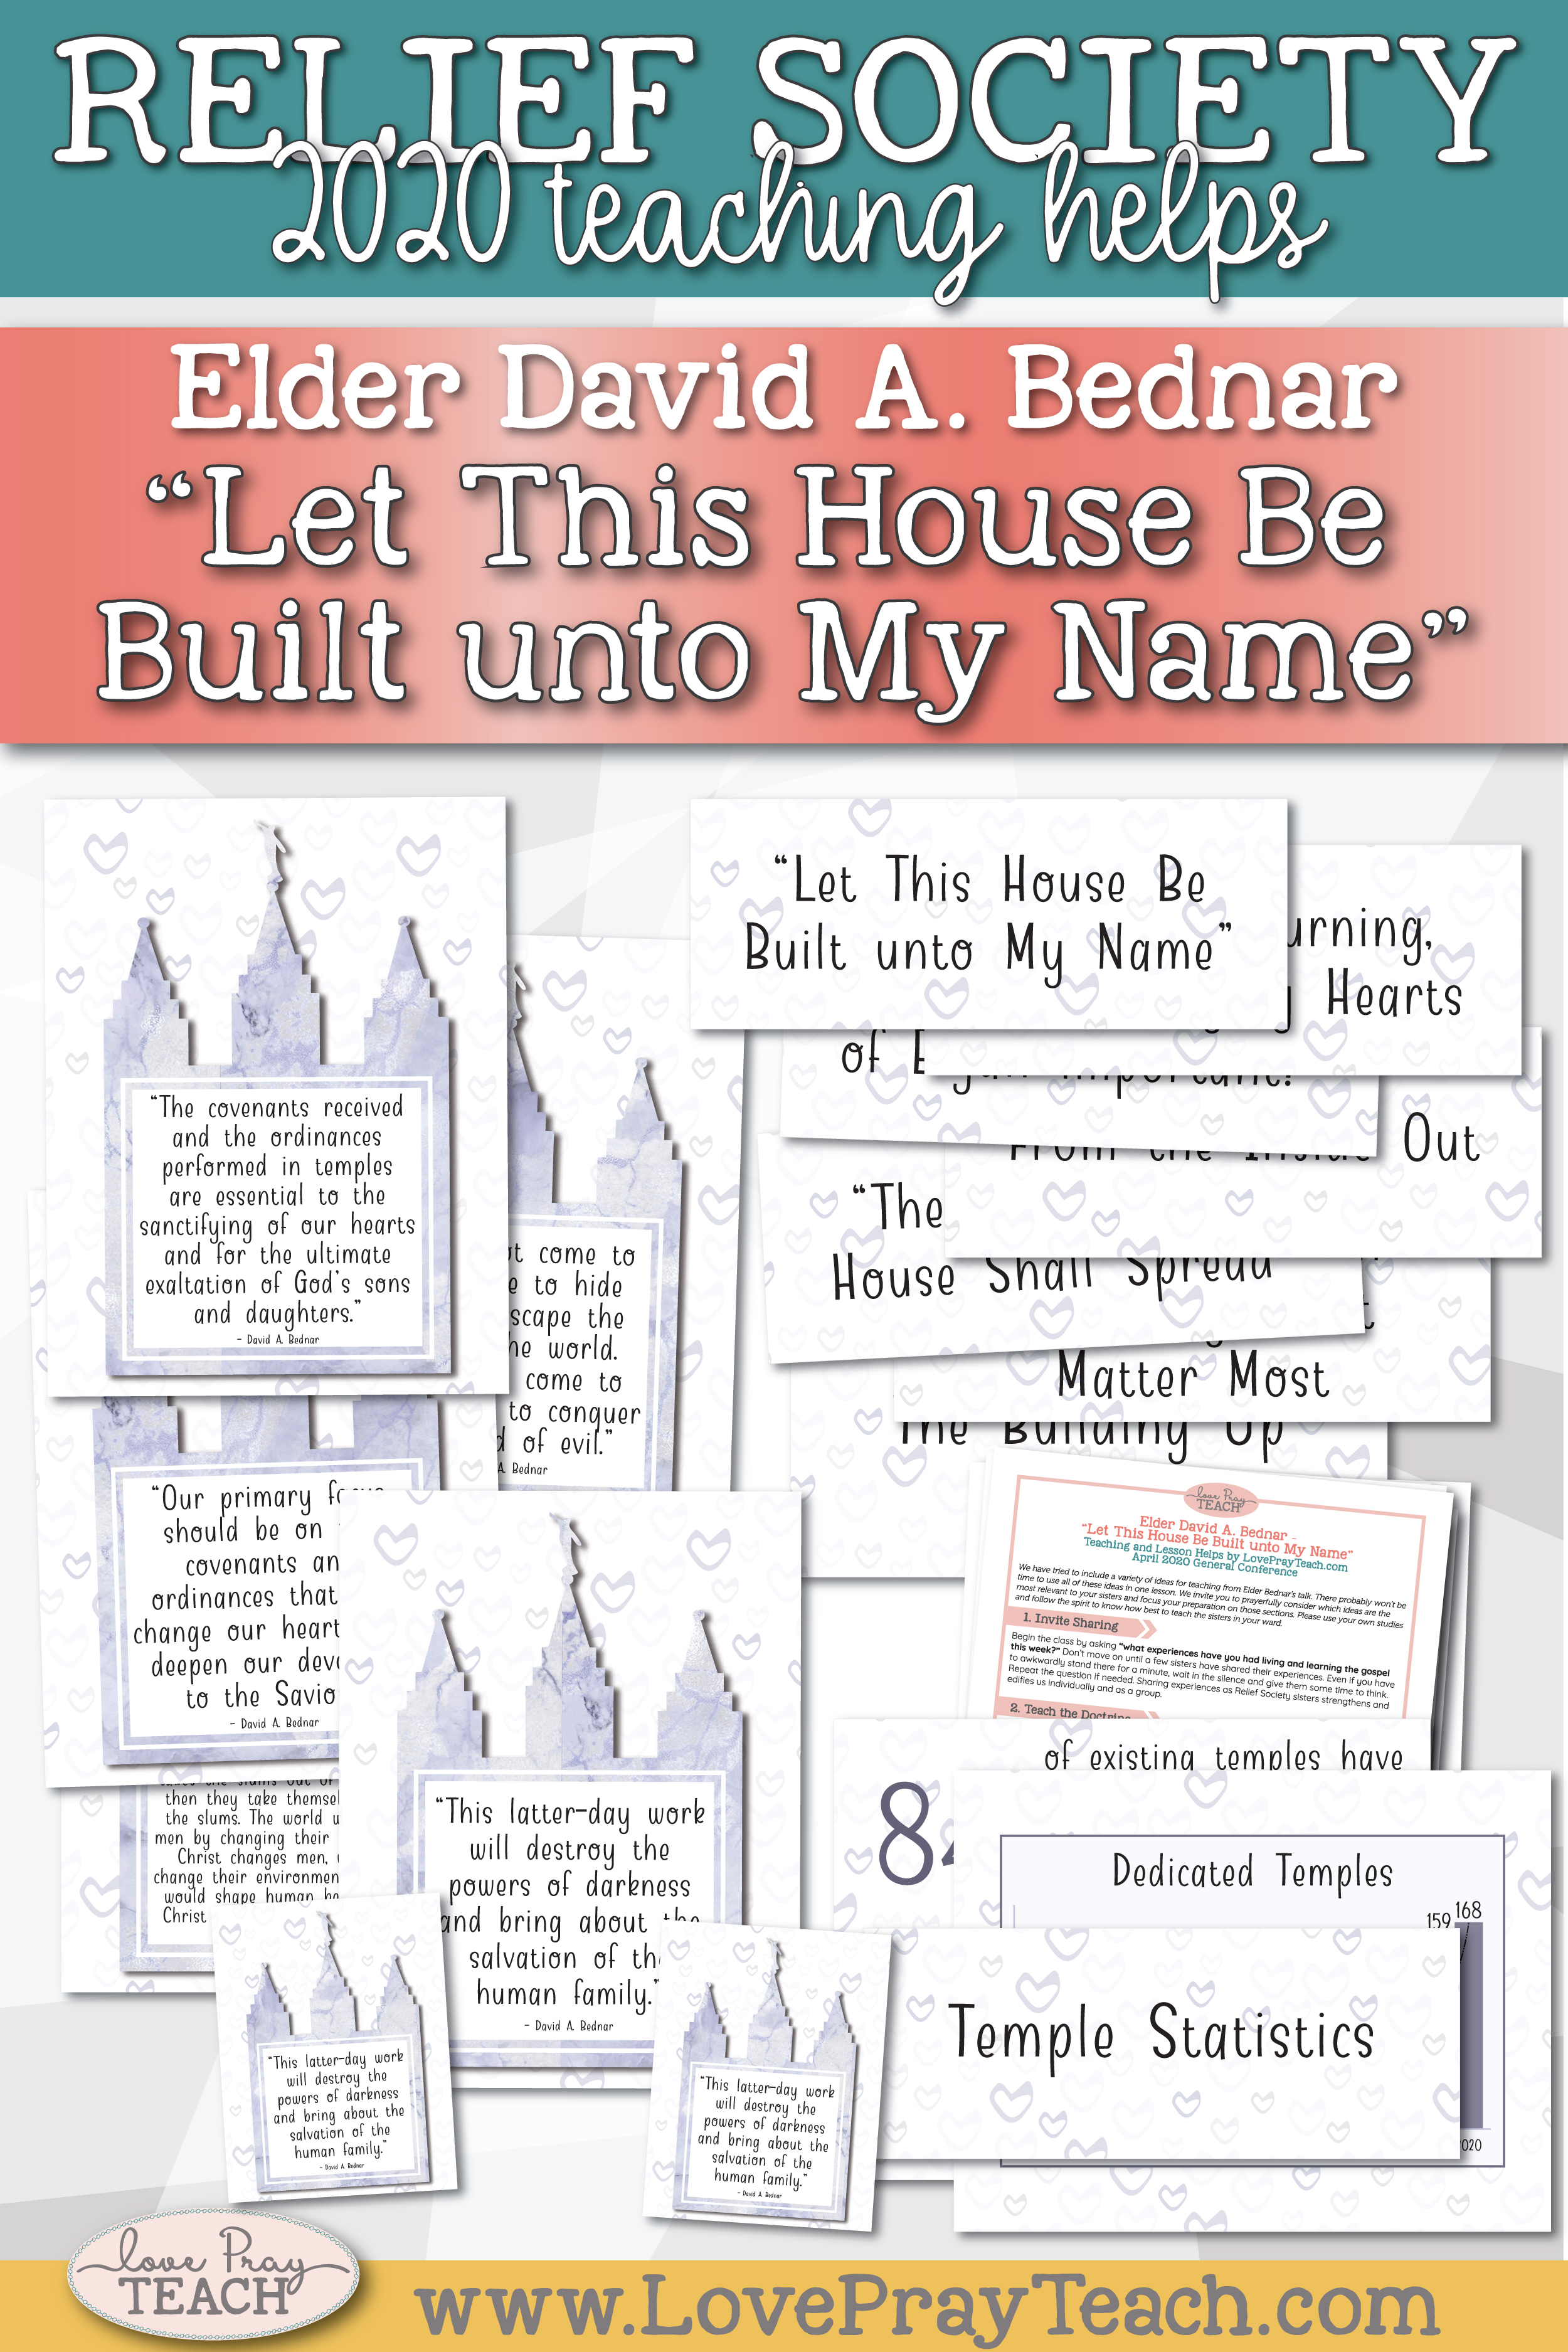 "April 2020 General Conference: Elder David A. Bednar - ""Let This House Be Built unto My Name"" Printable Lesson Helps and Handouts for Latter-day Saints"